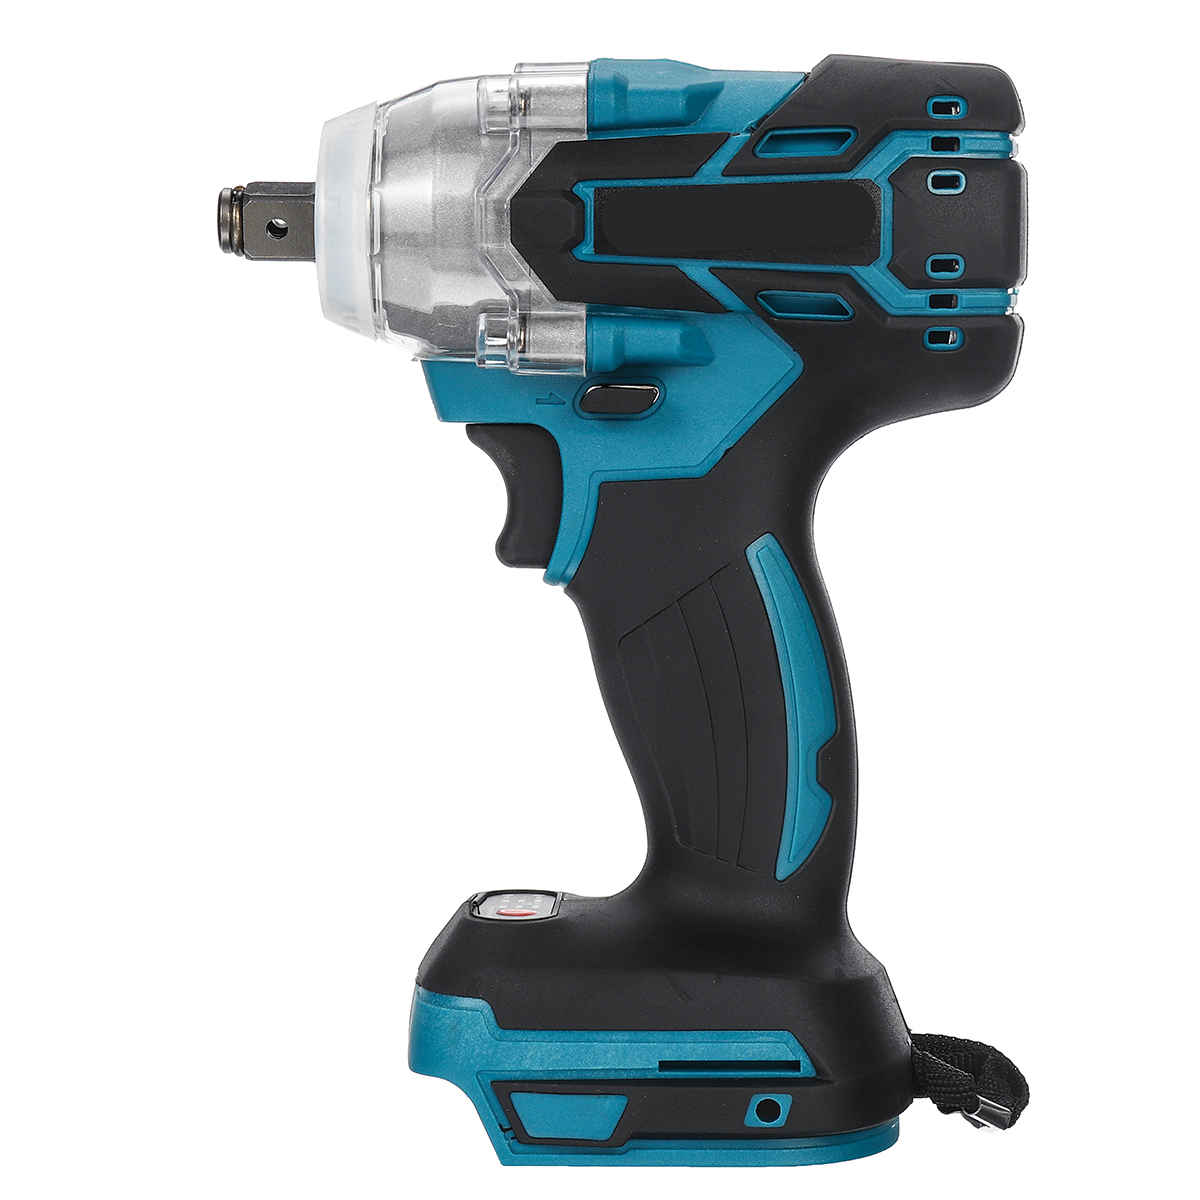 Electric Impact Wrench 1/2 inch Brushless Cordless Socket Wrench Power Tools Rechargeable For Makita 18V Battery